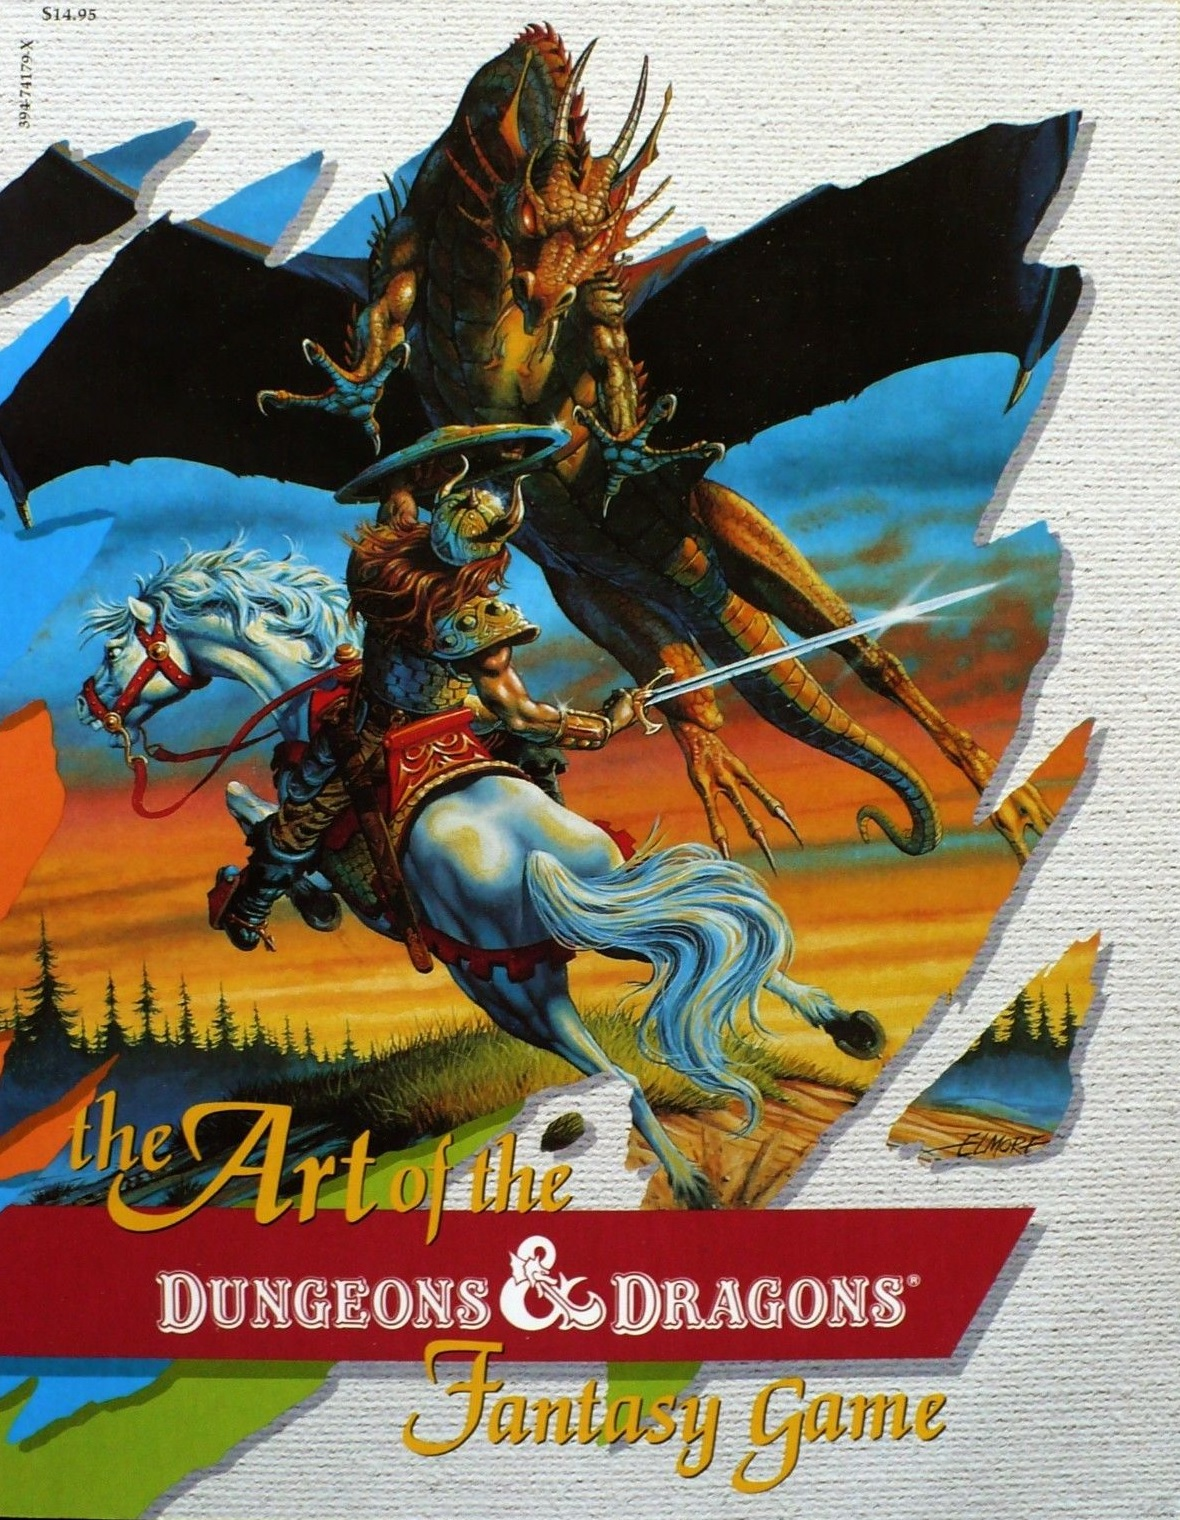 Can discussed fantasy art dungeons and dragons